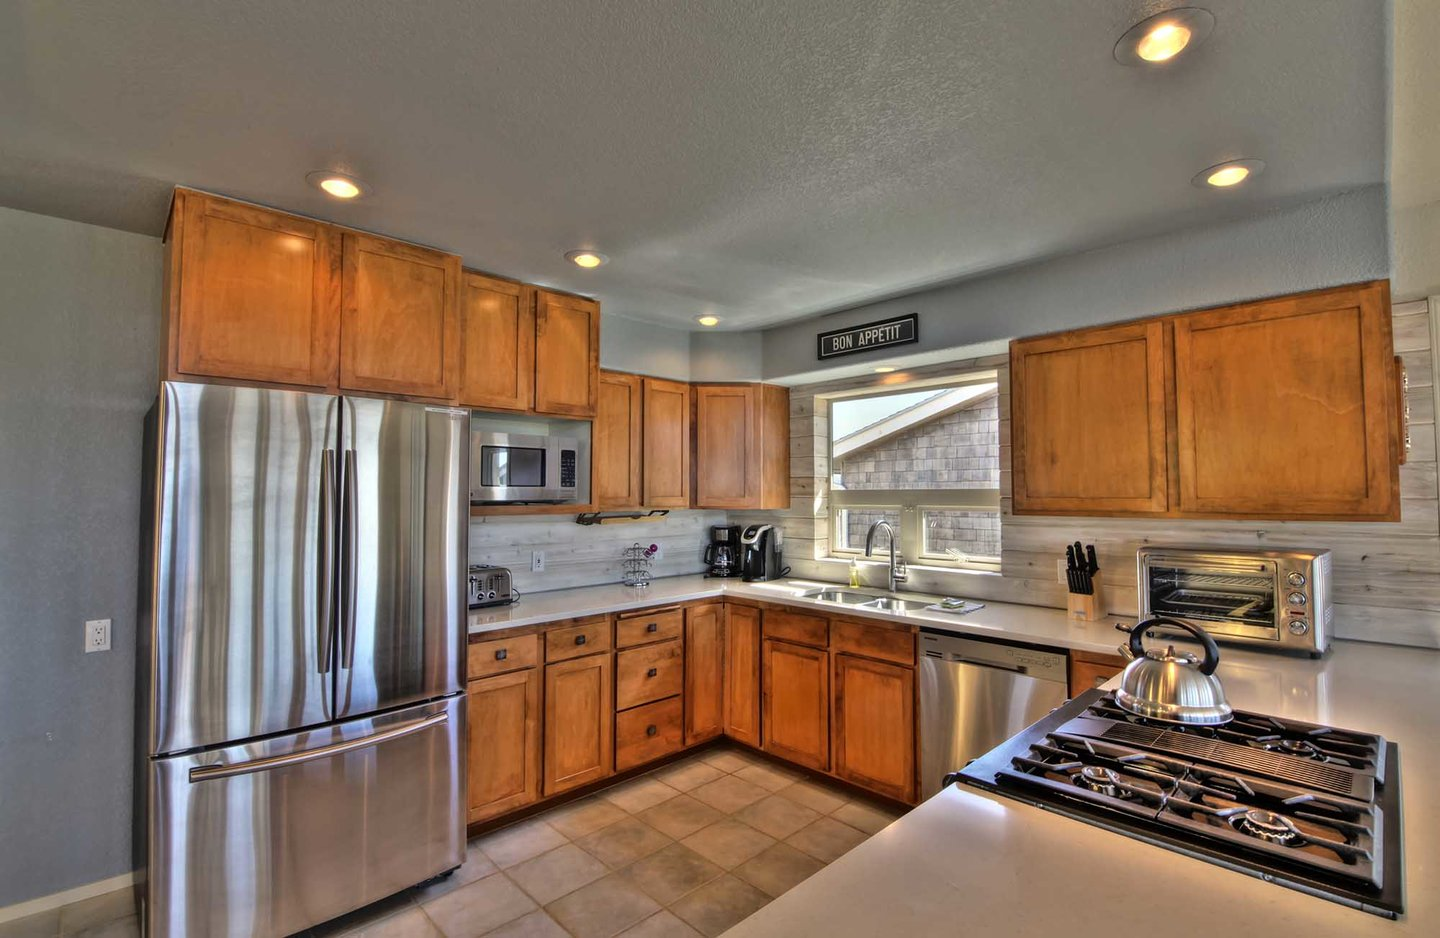 The finest in stainless steel appliances and lovely cabinetry, highlight this chef-worthy kitchen.